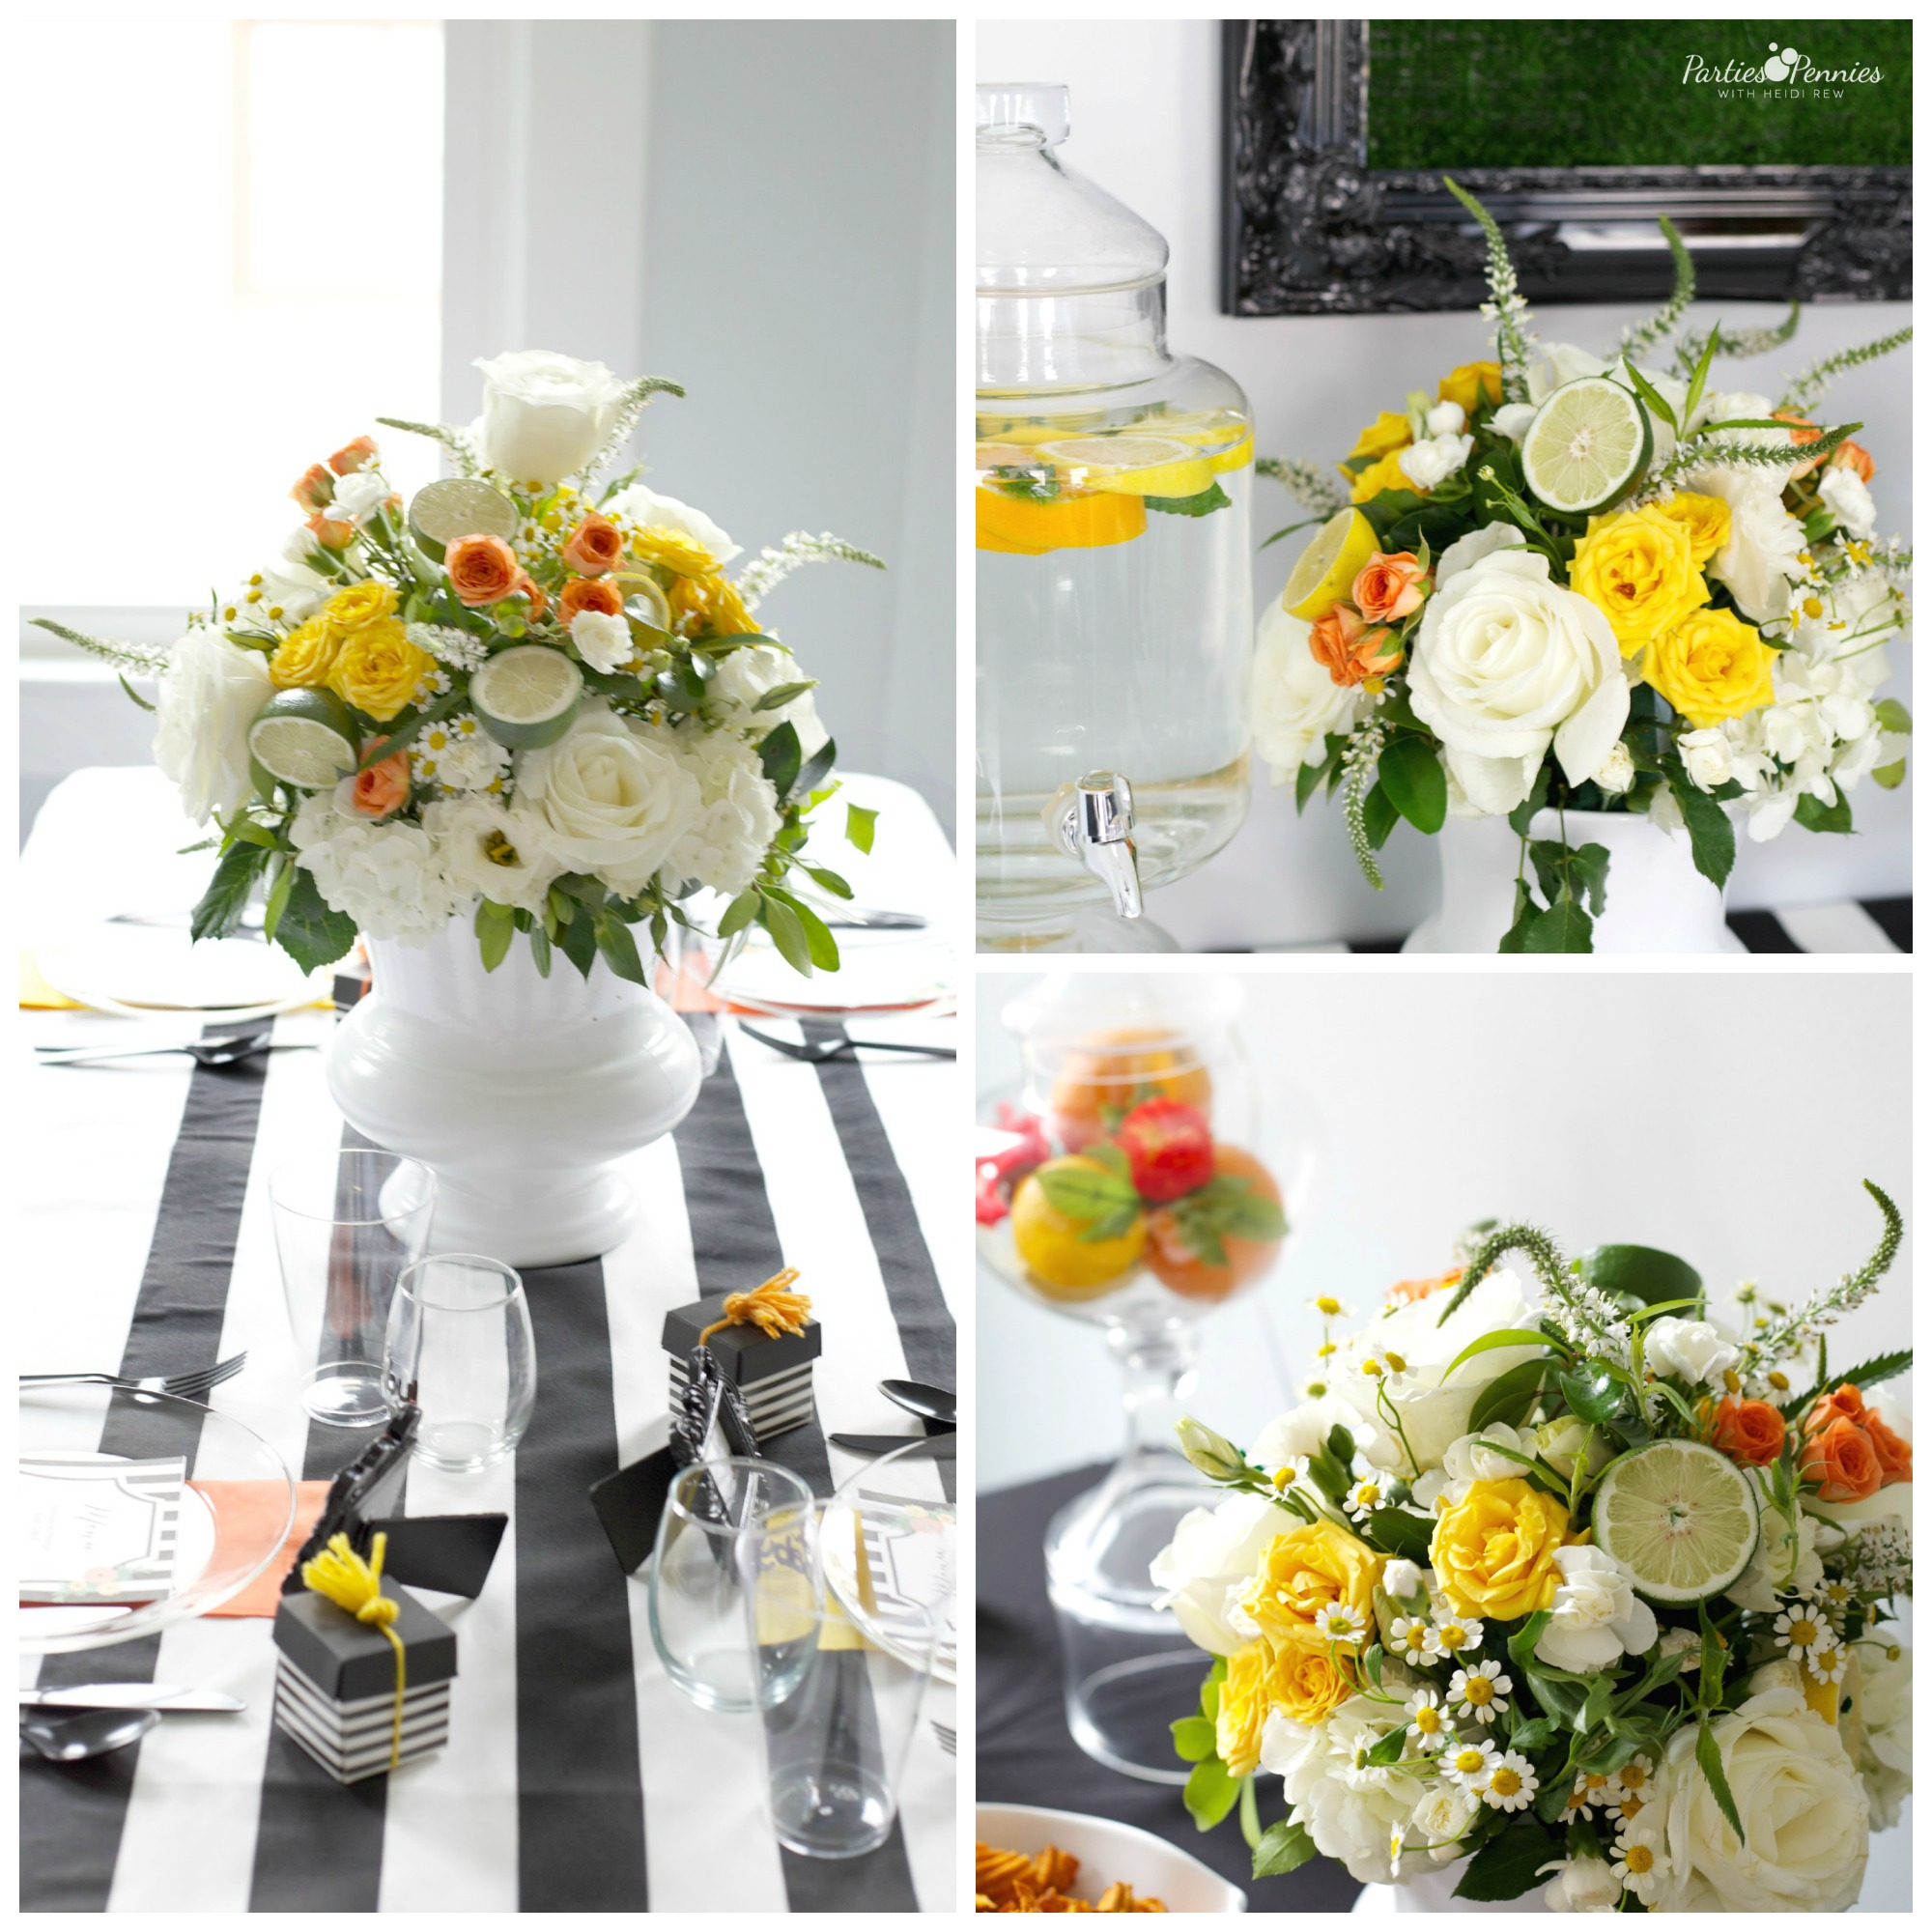 Black White and Citrus Baby Shower | PartiesforPennies.com | Mamas & Mocktails #florals #citrusarrangement #sisteractdesigns